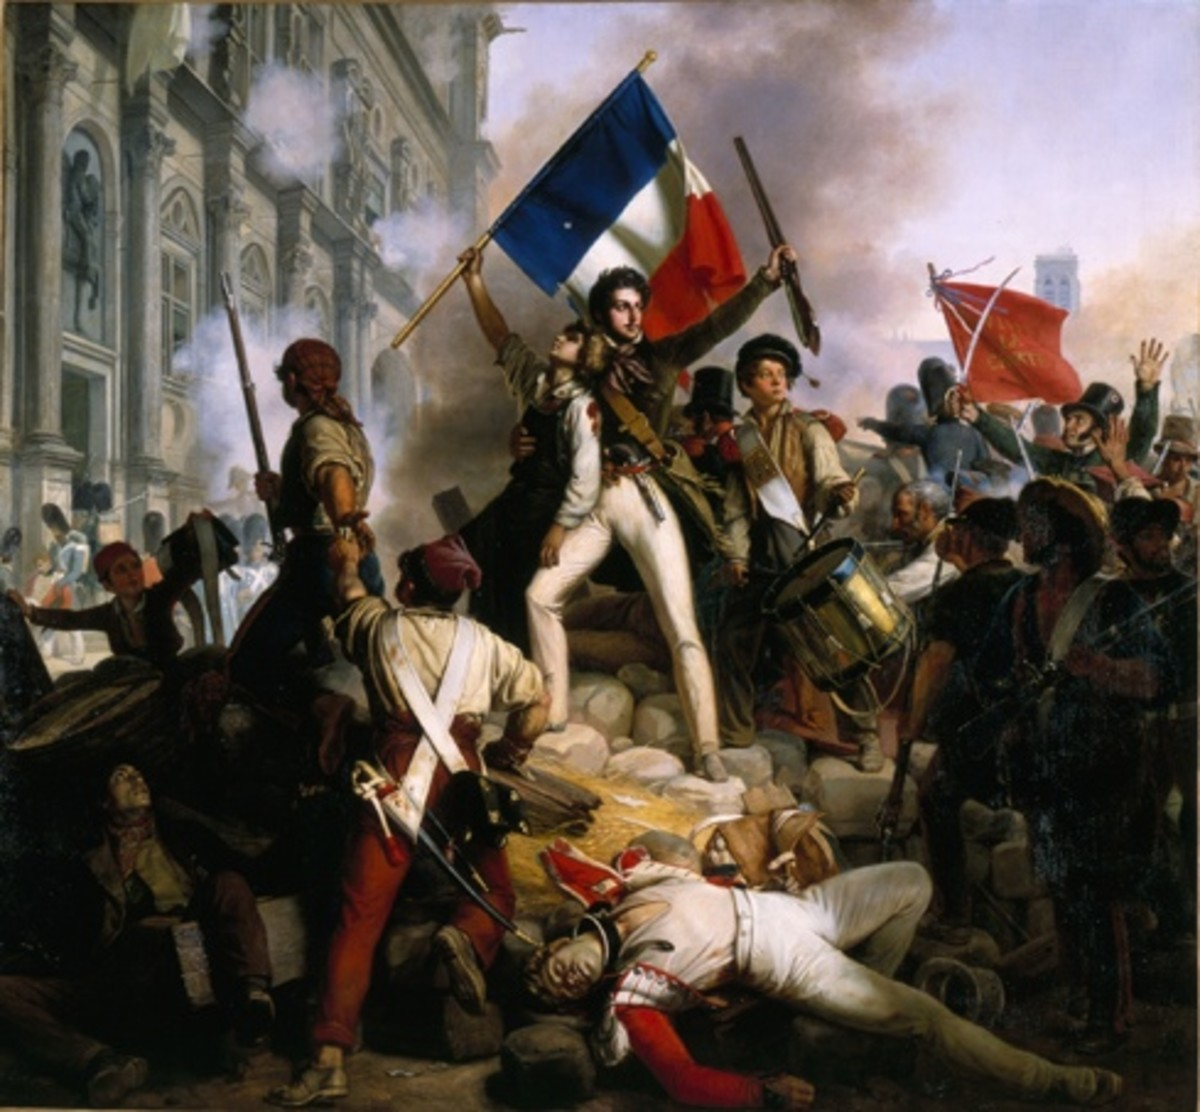 Orthodox and Revisionist Interpretations of the French Revolution